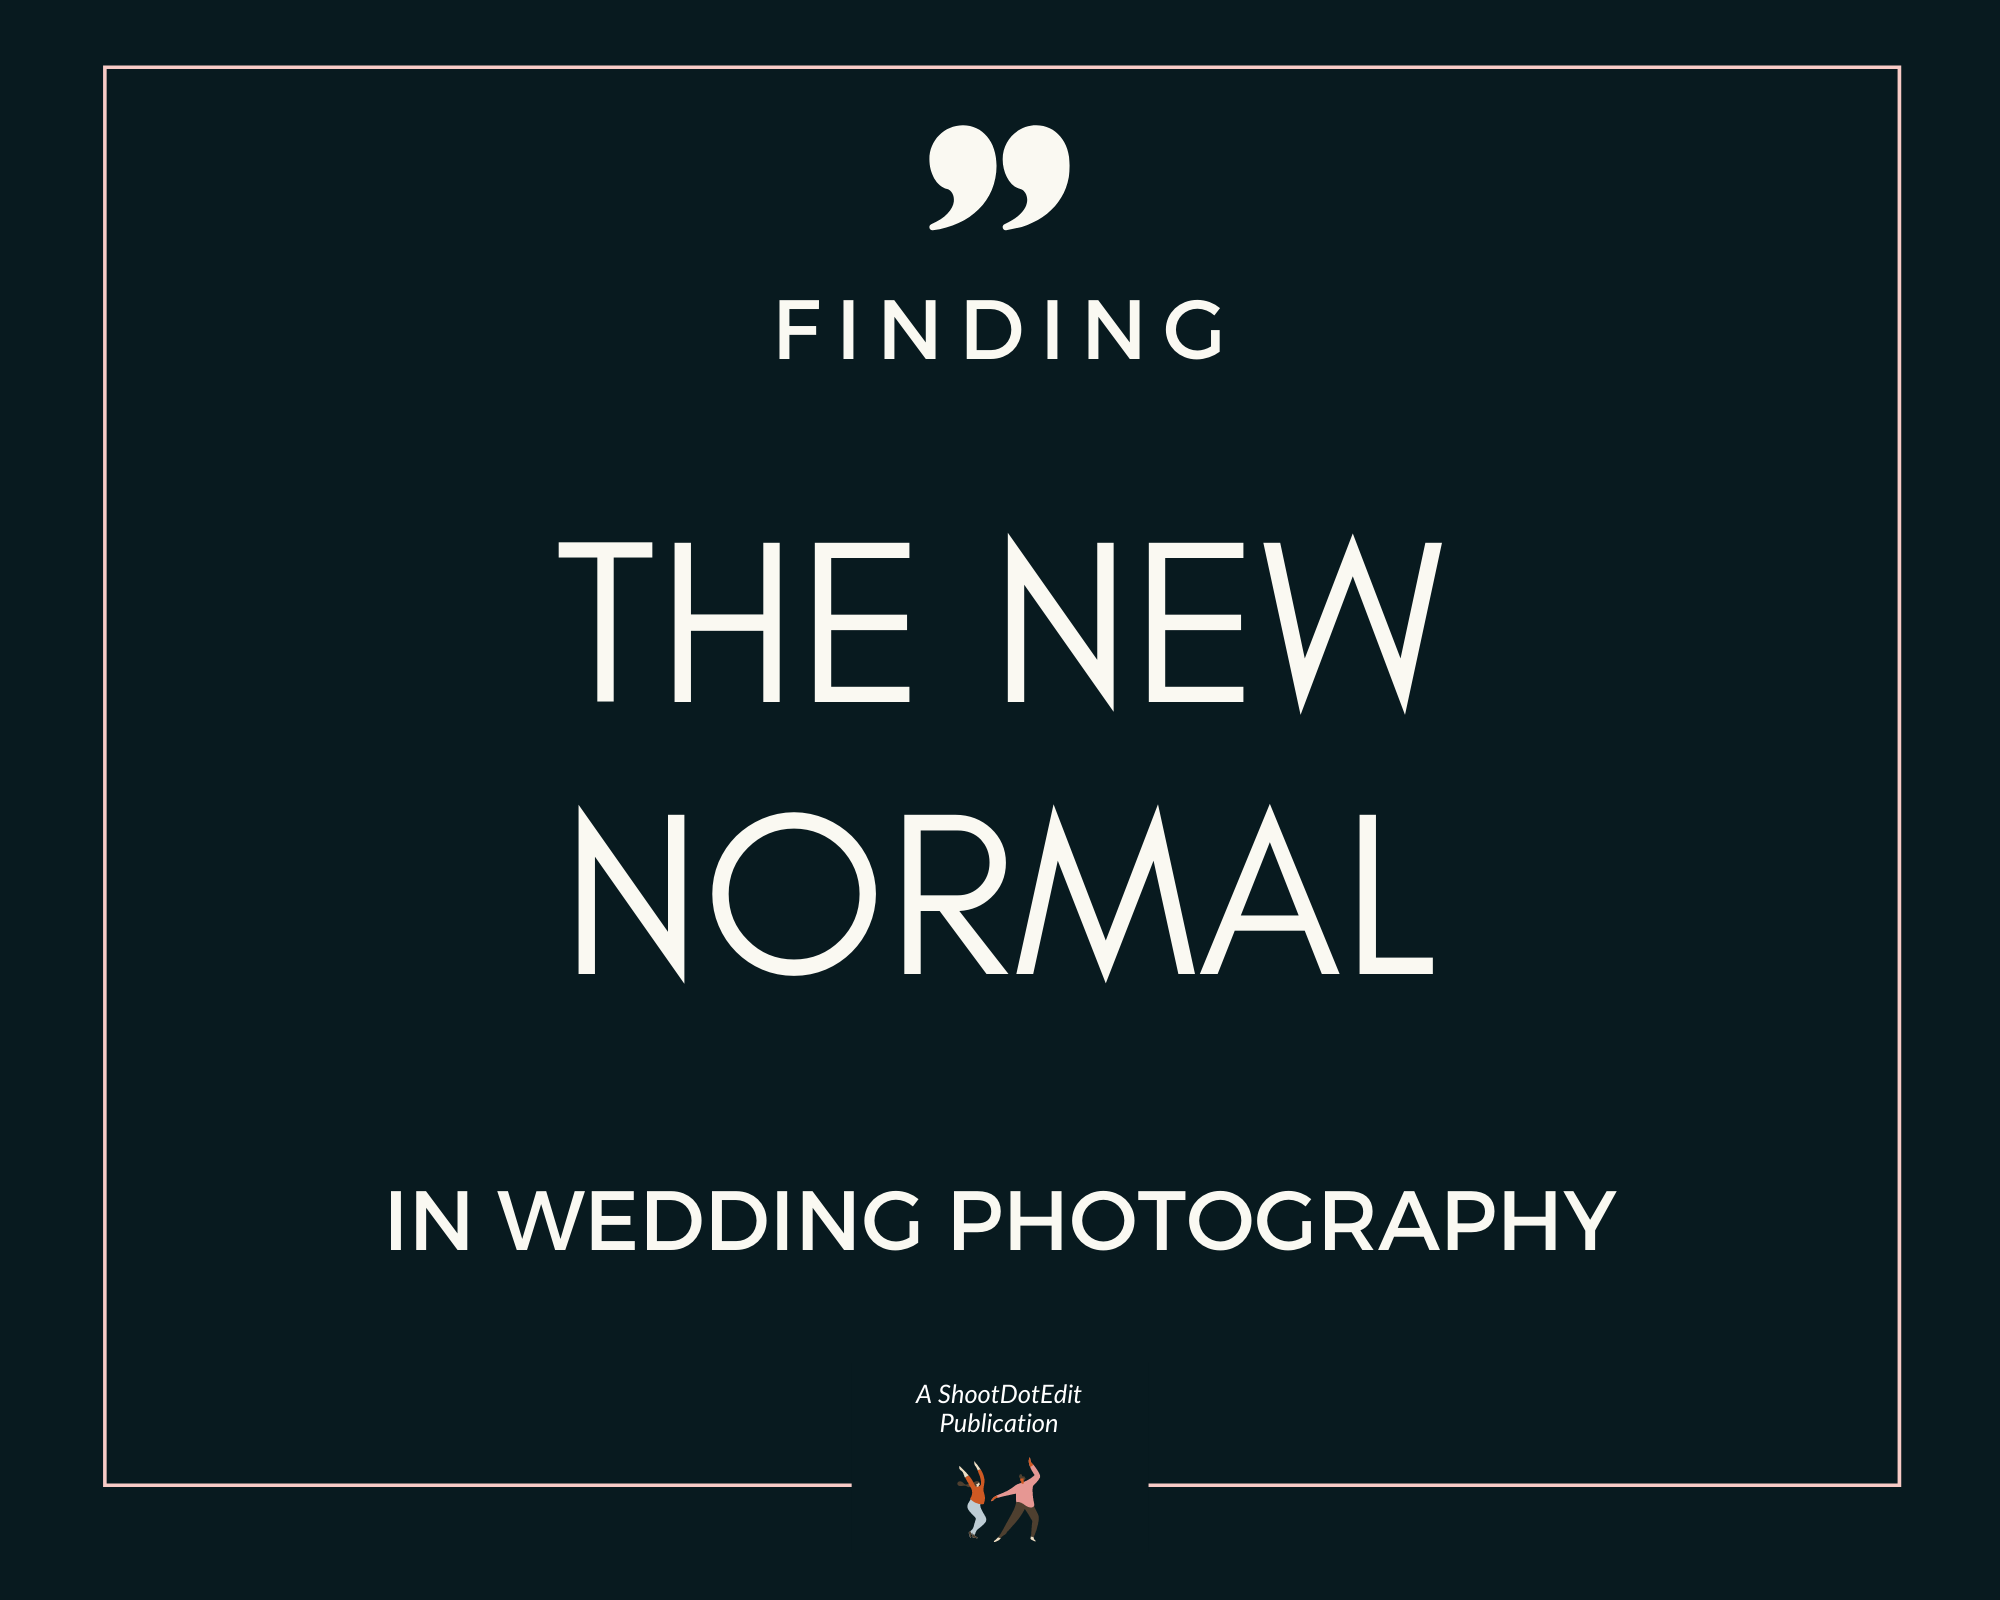 Graphic displaying - Finding the new normal in wedding photography